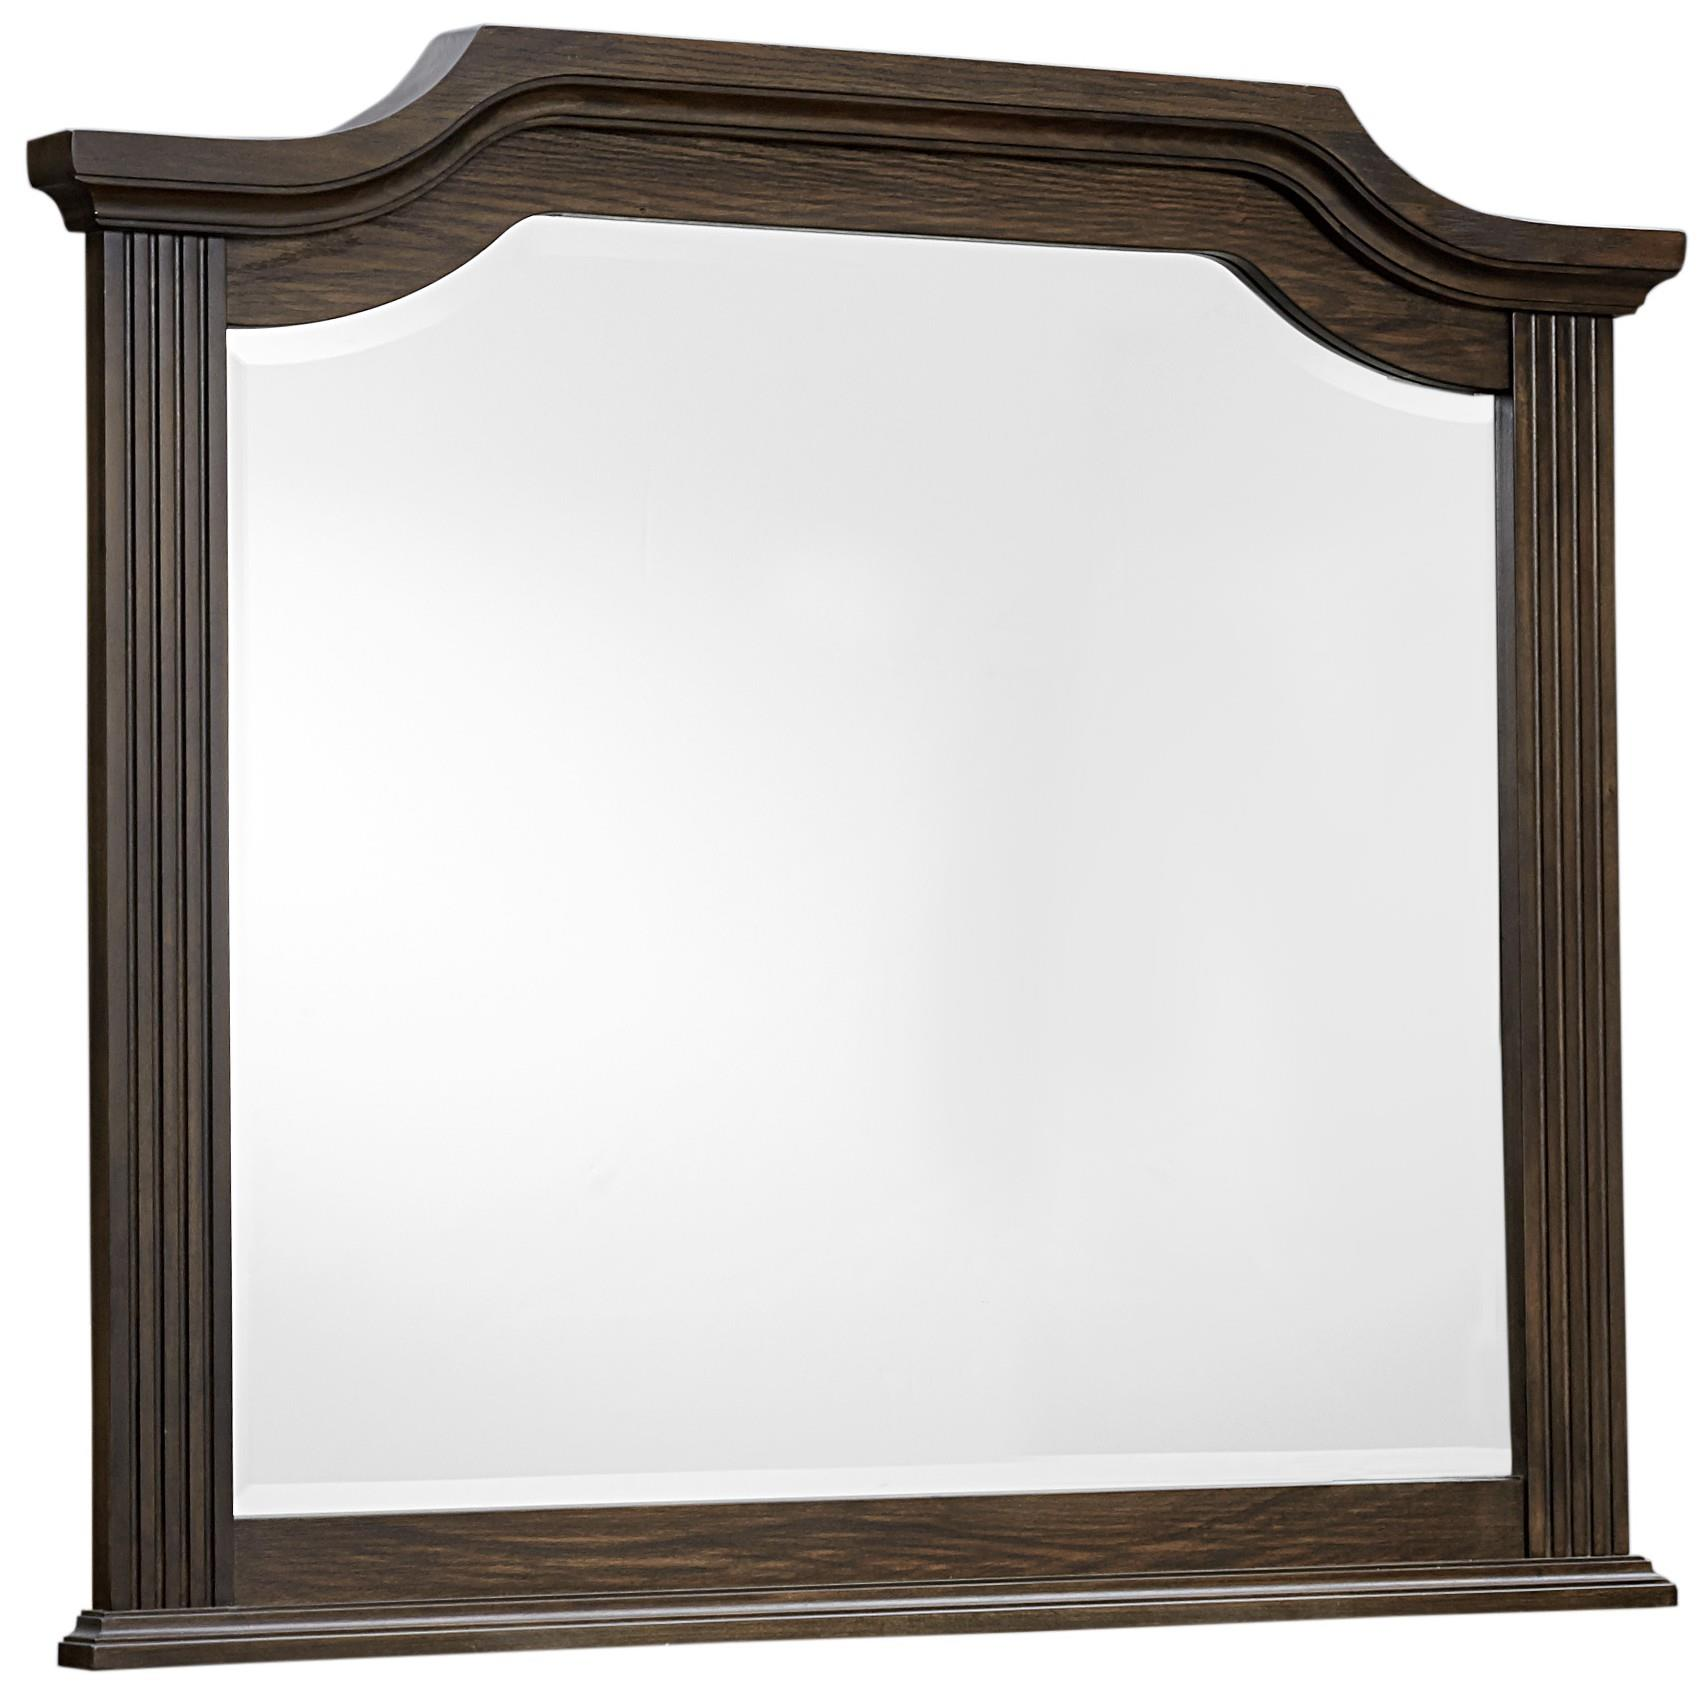 Vaughan Bassett Affinity Arch Mirror - Beveled glass - Item Number: 560-447